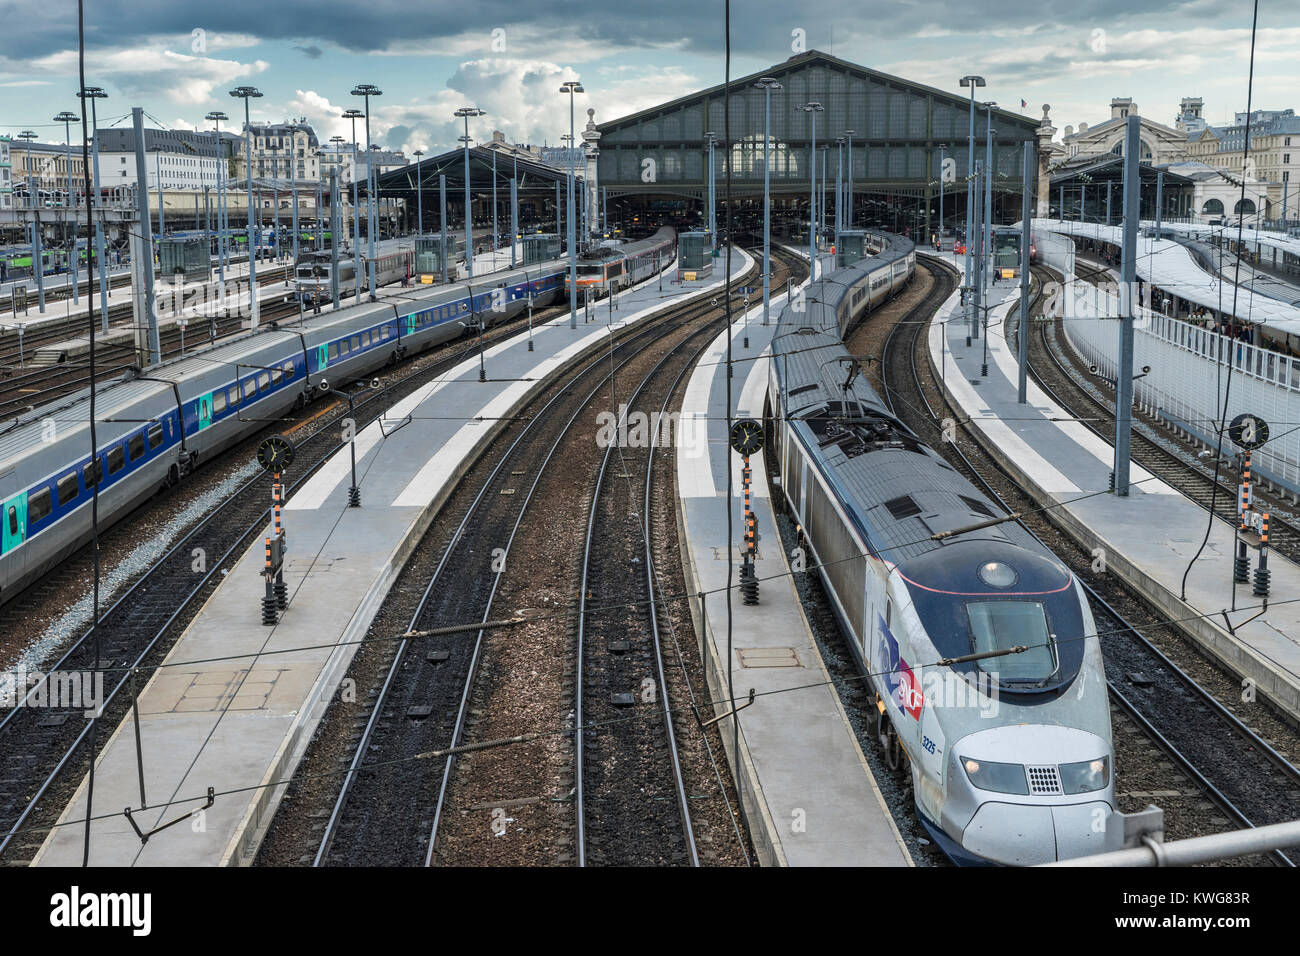 France, Paris, Gare  du Nord, TGV high speed train - Stock Image